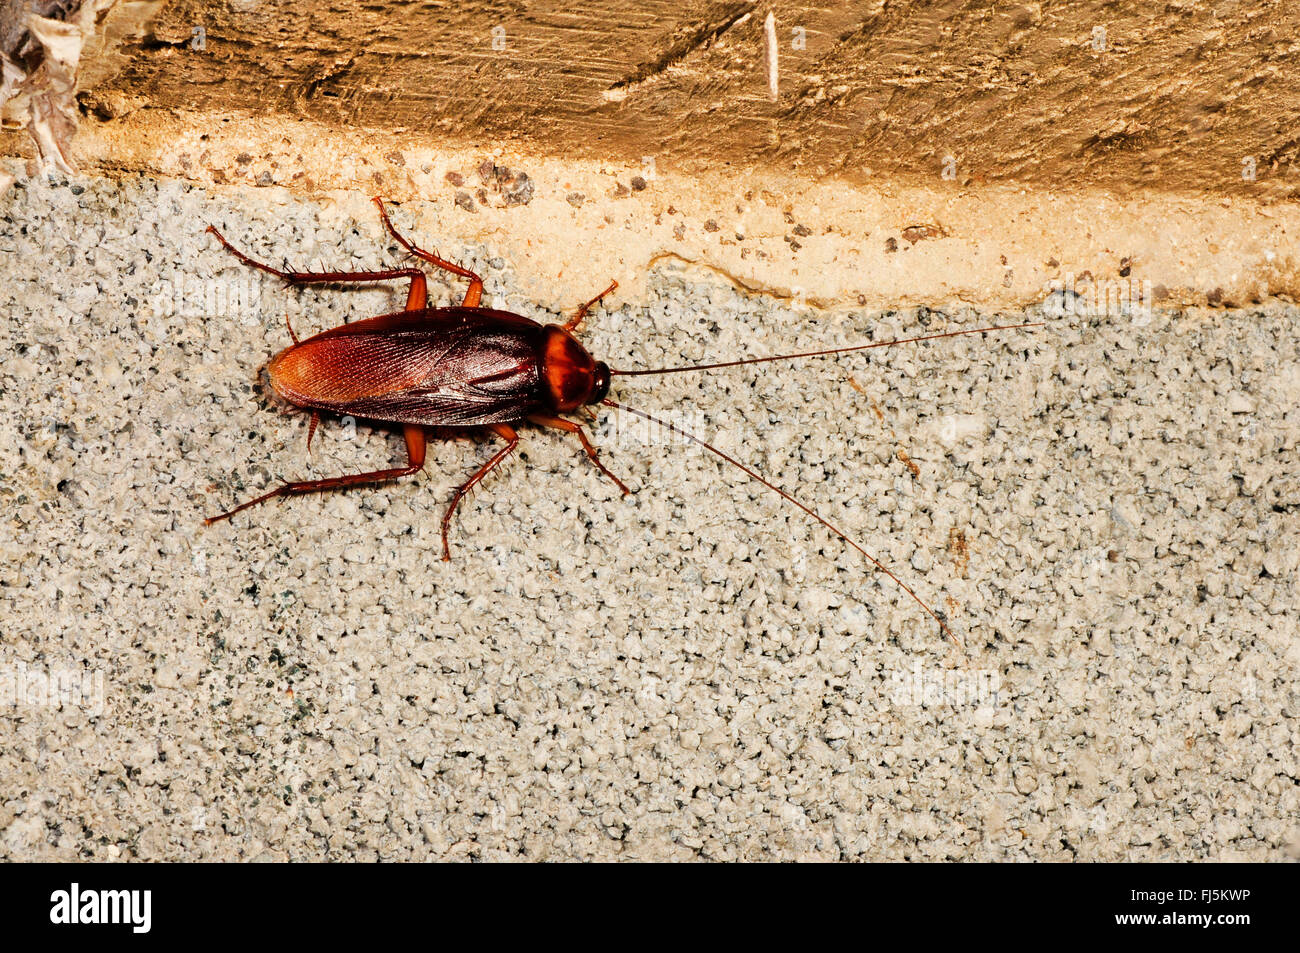 Cockroaches House Stock Photos & Cockroaches House Stock Images - Alamy